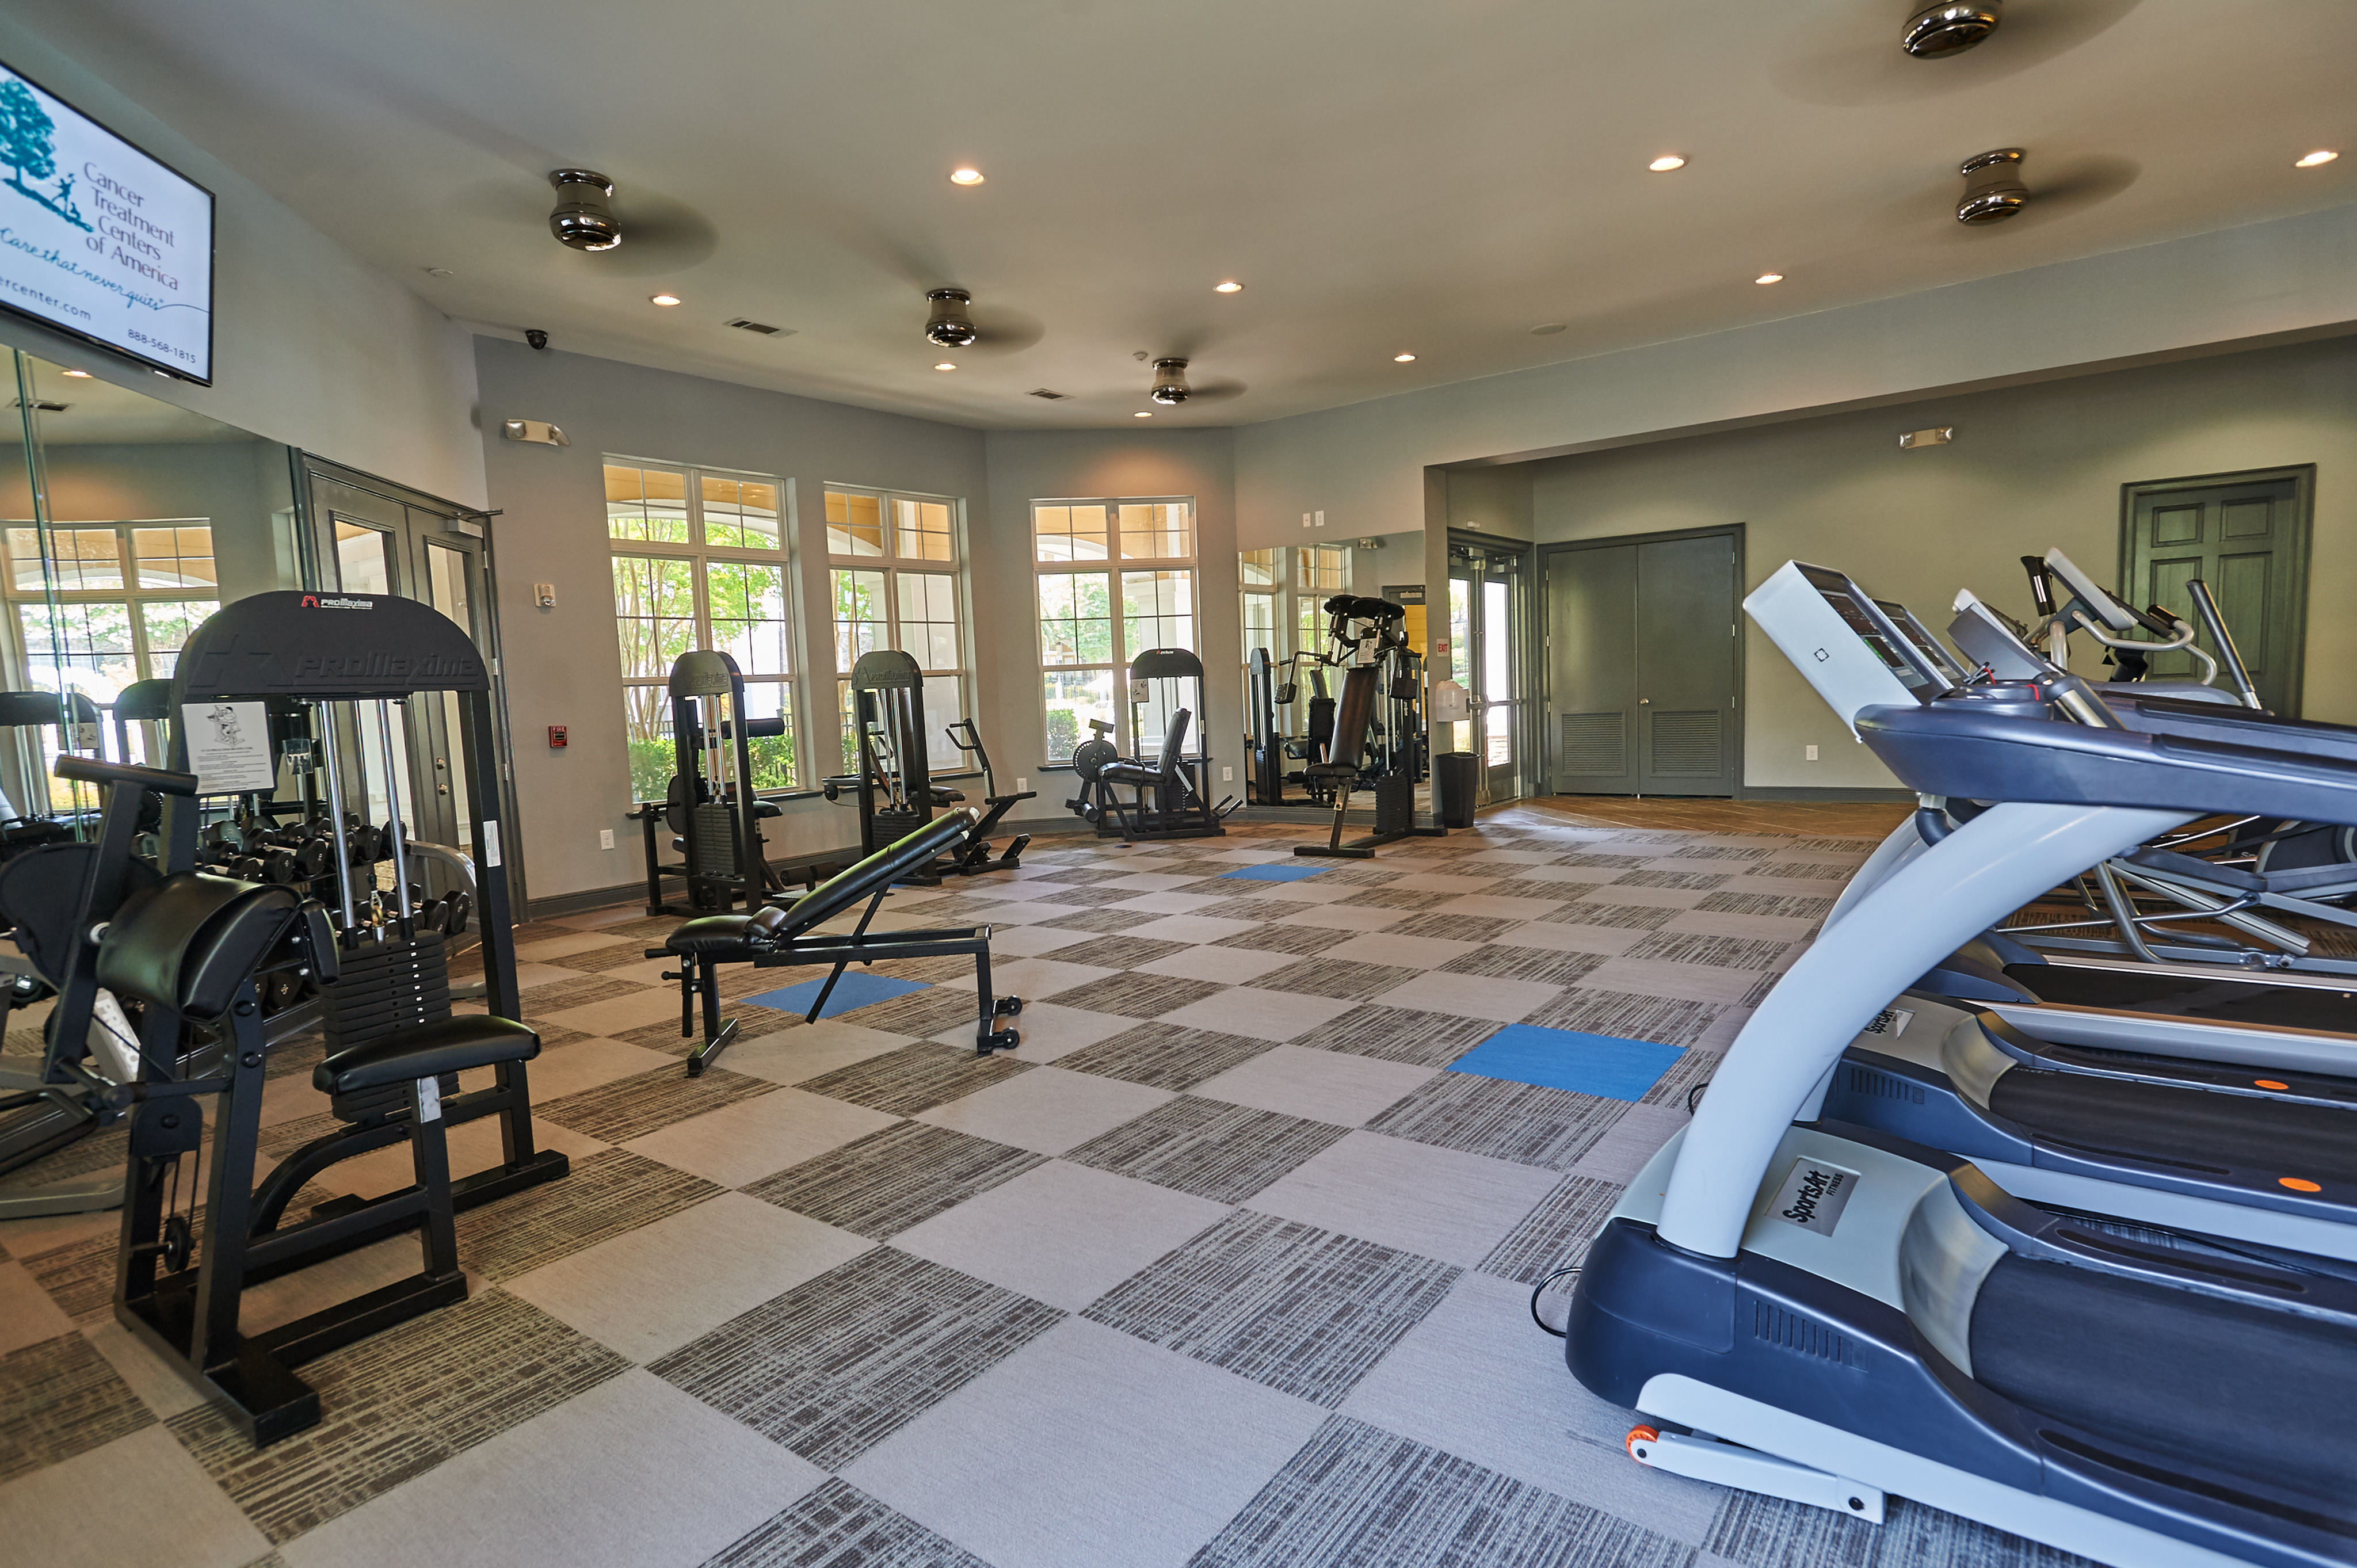 View of Fitness Center, Showing Cardio Equipment, Free Weights, and Weight Benches at Cottonwood Reserve Apartments